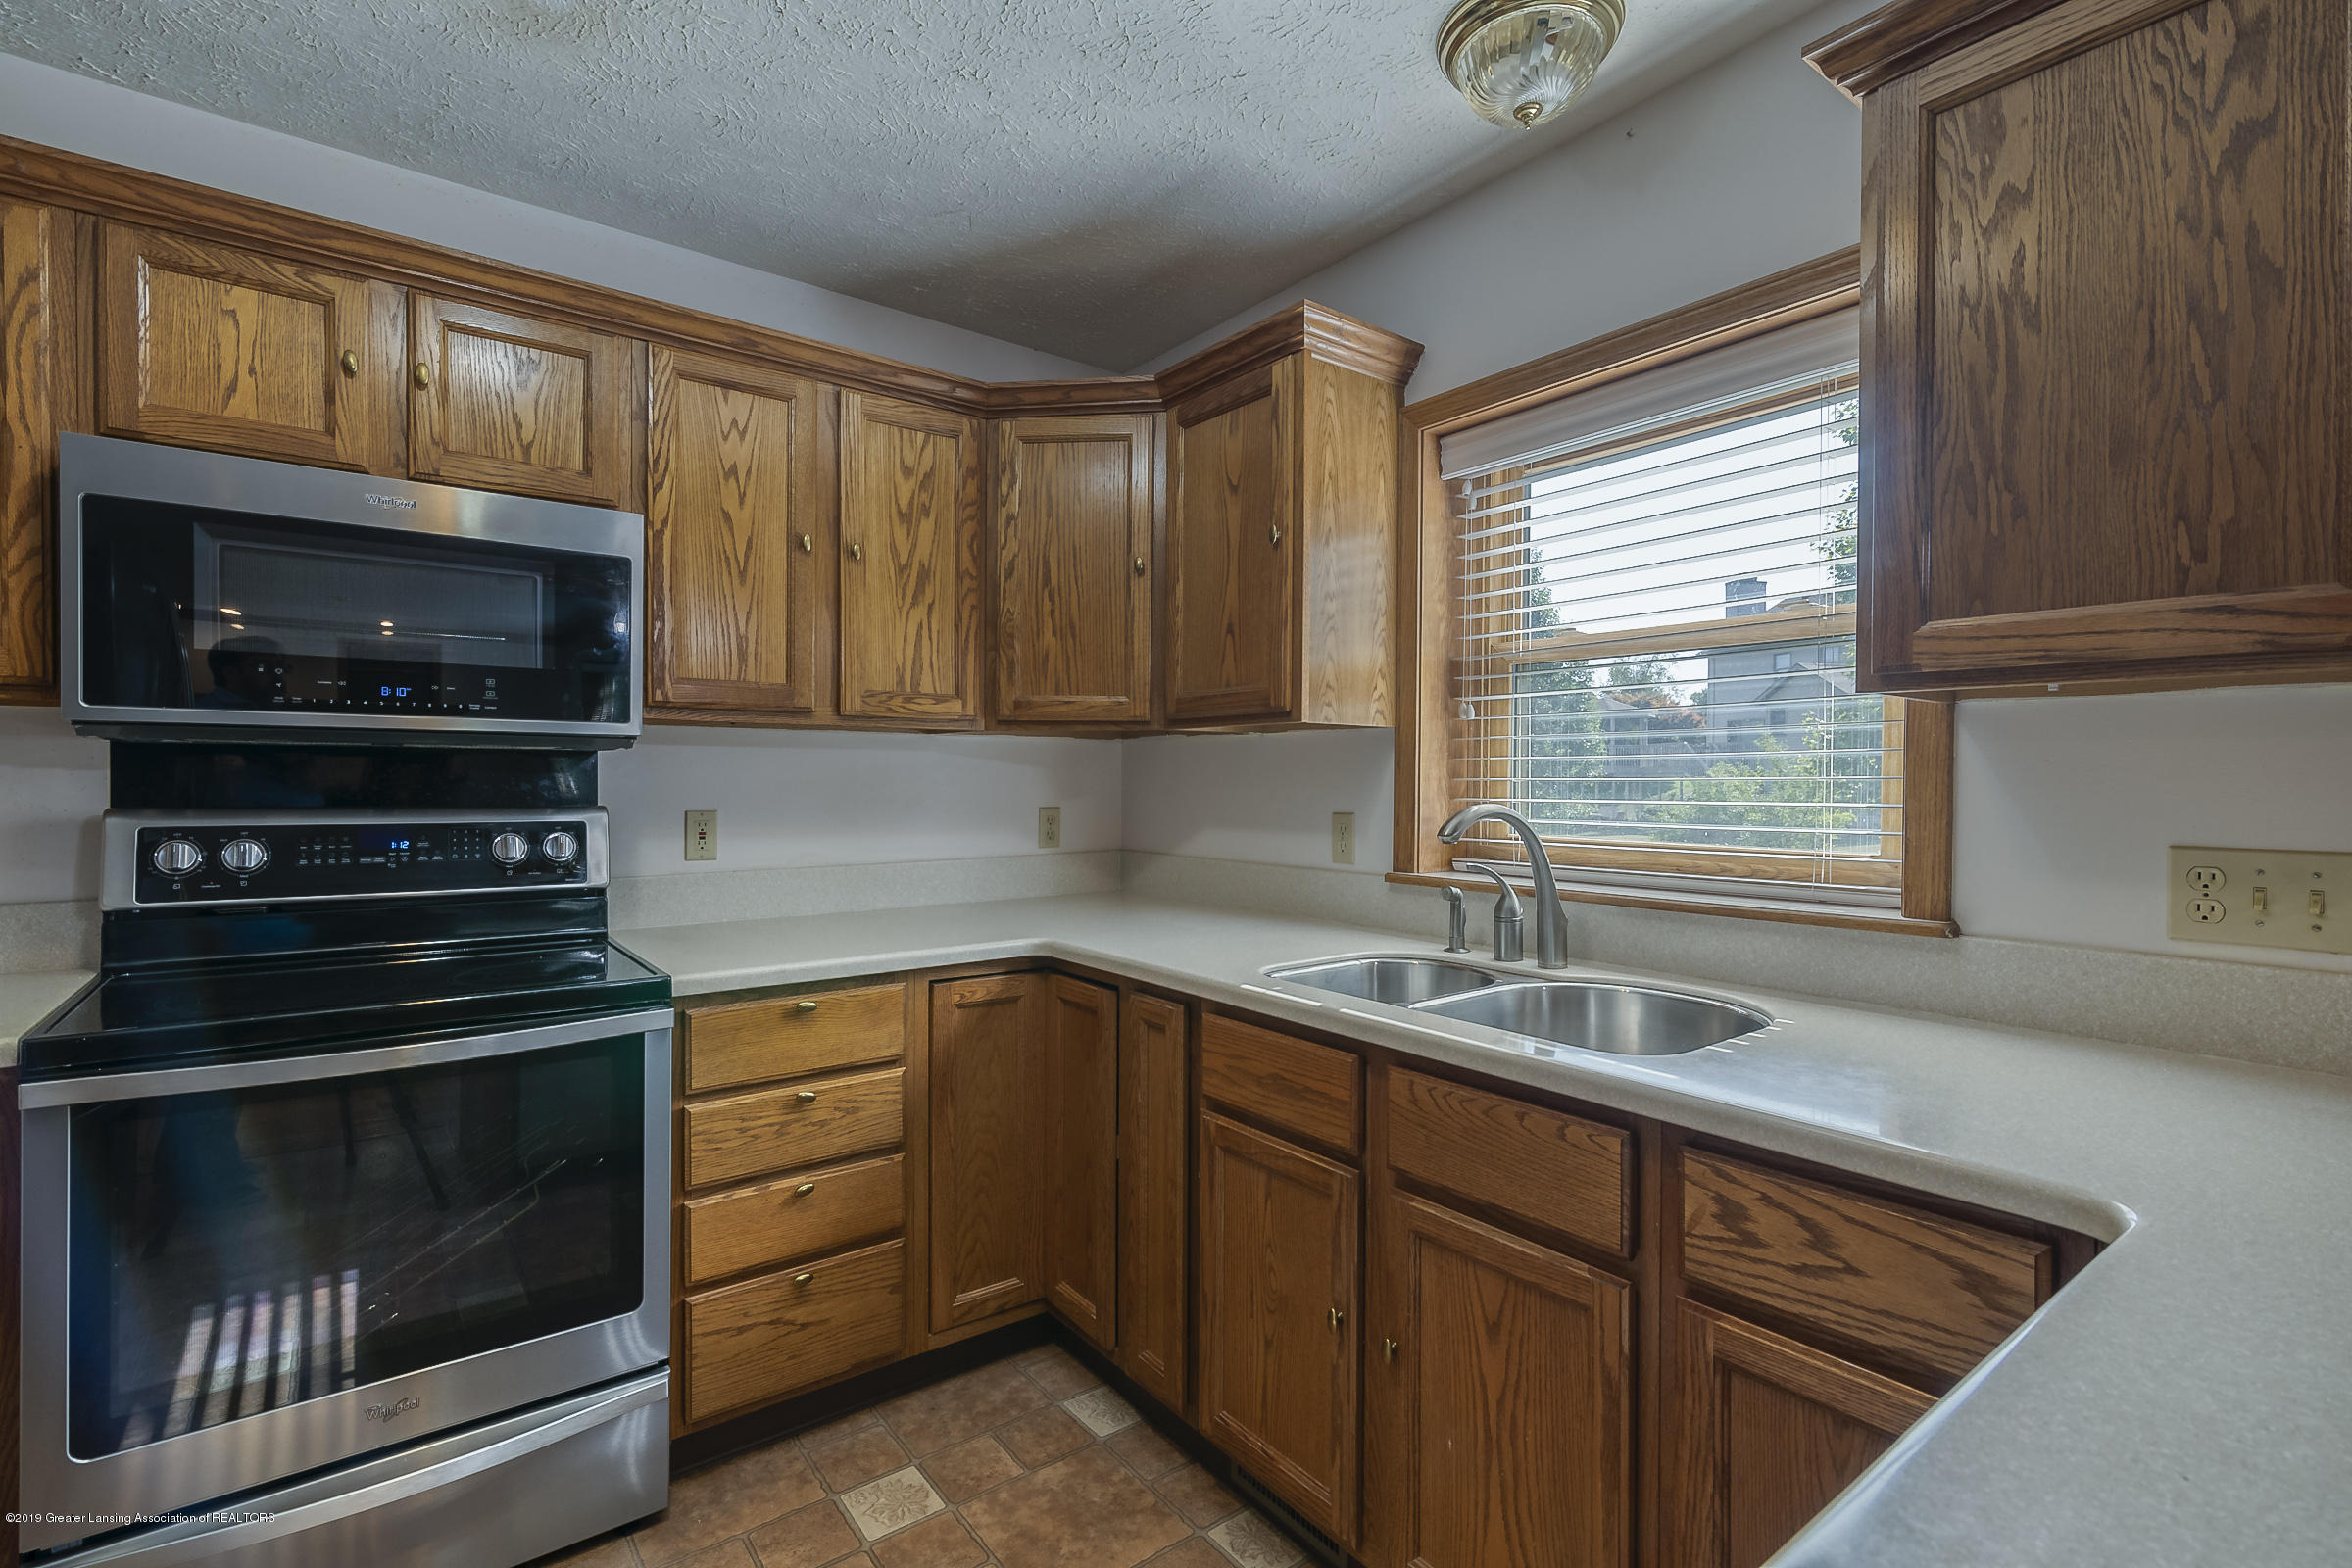 2343 Chisholm Ct - KITCHEN - 9